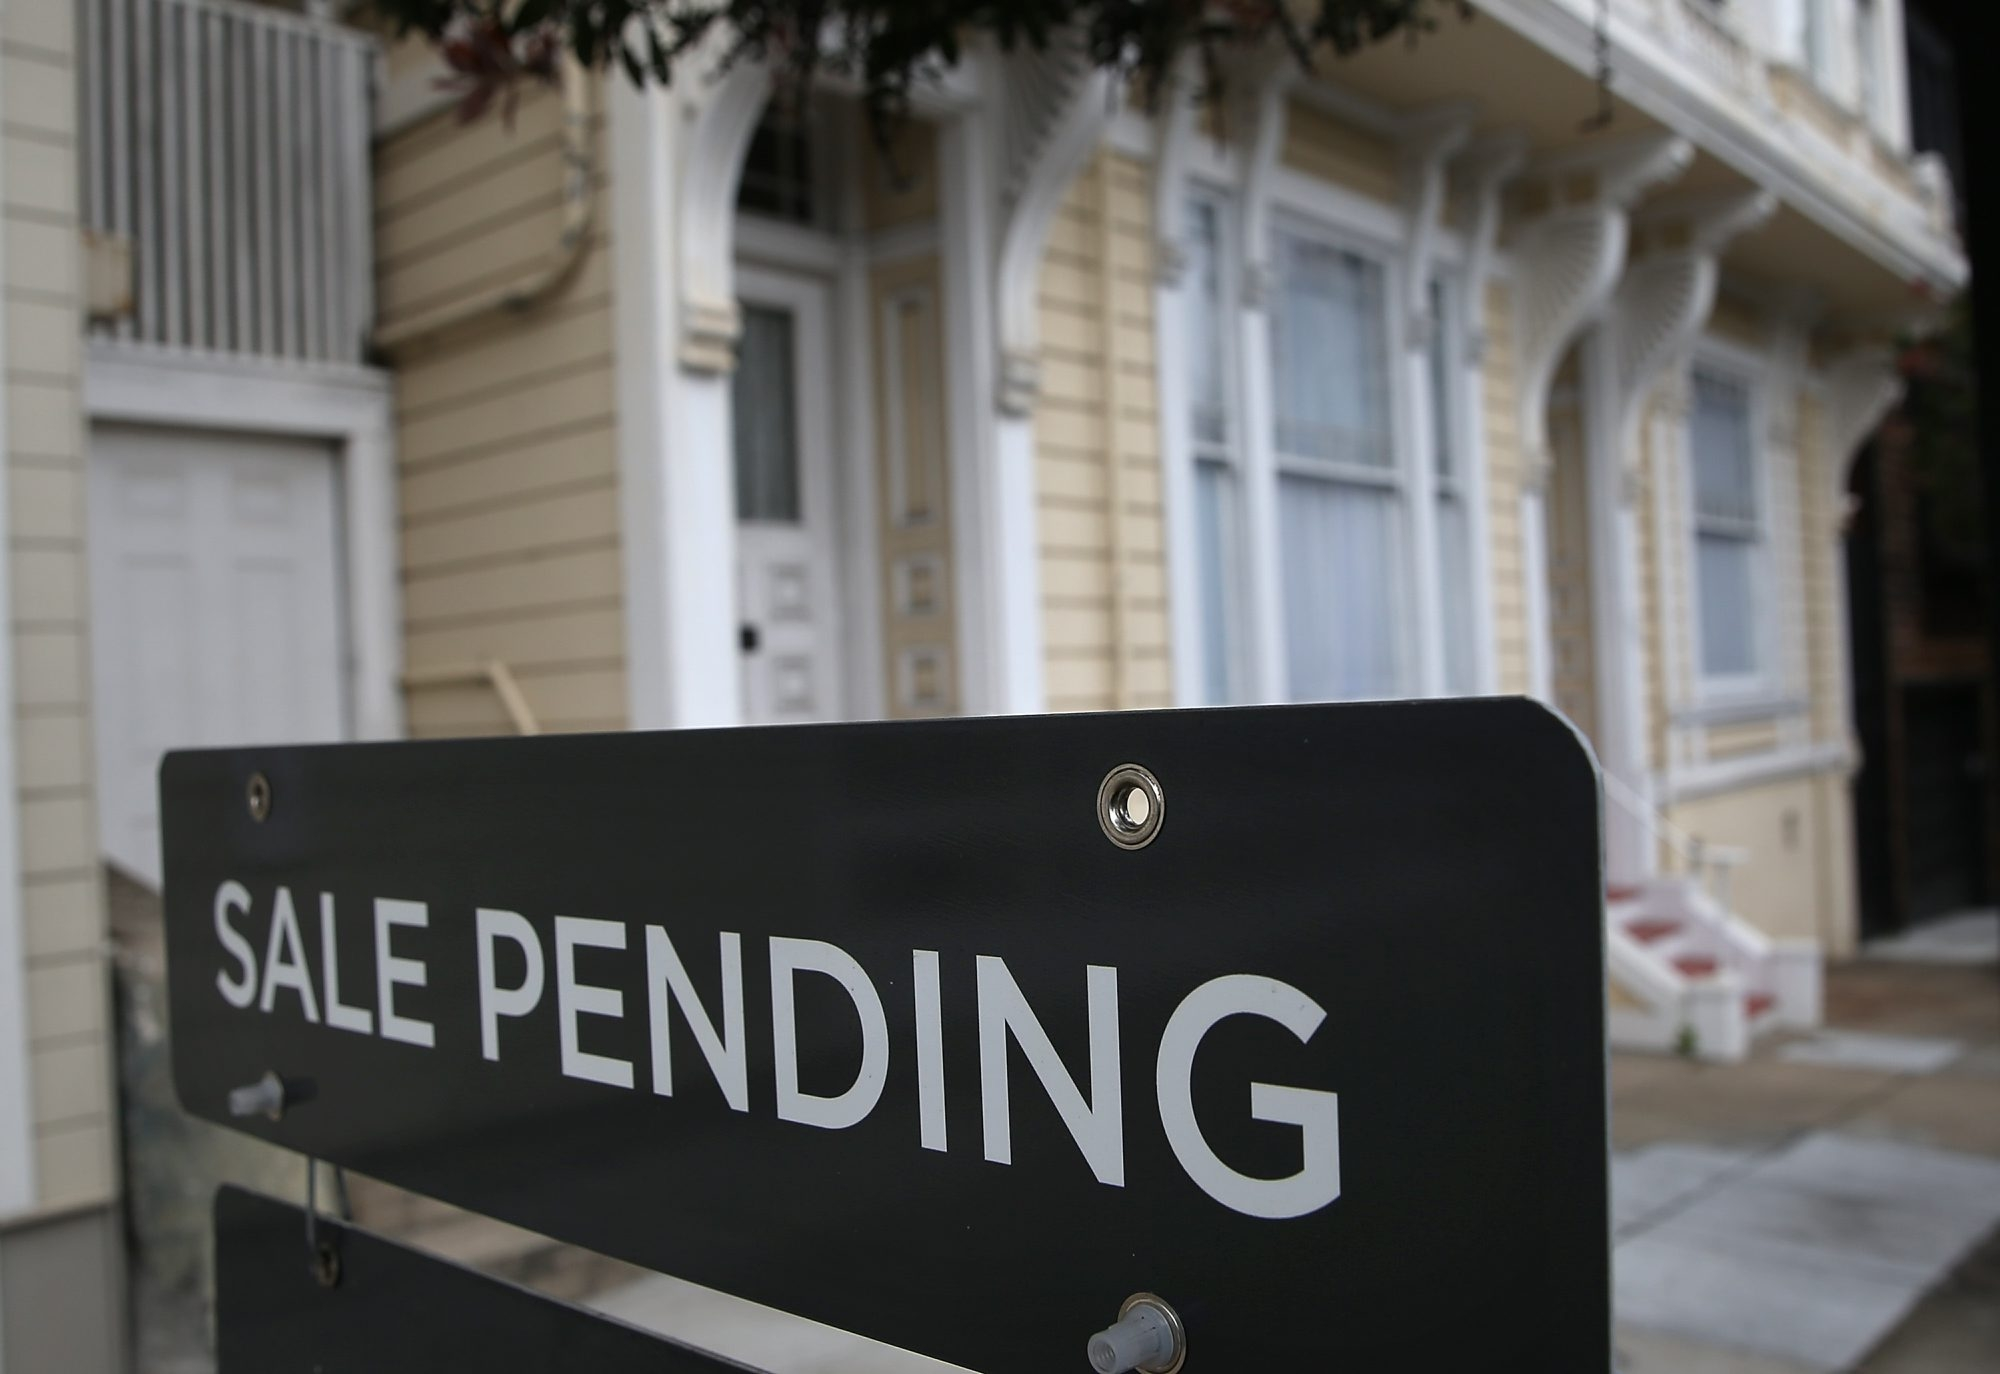 Fannie Mae and Freddie Mac officials hope lower down payments will make homes, such as this one in San Francisco, more accessible to minorities, young adults and first-time homebuyers.